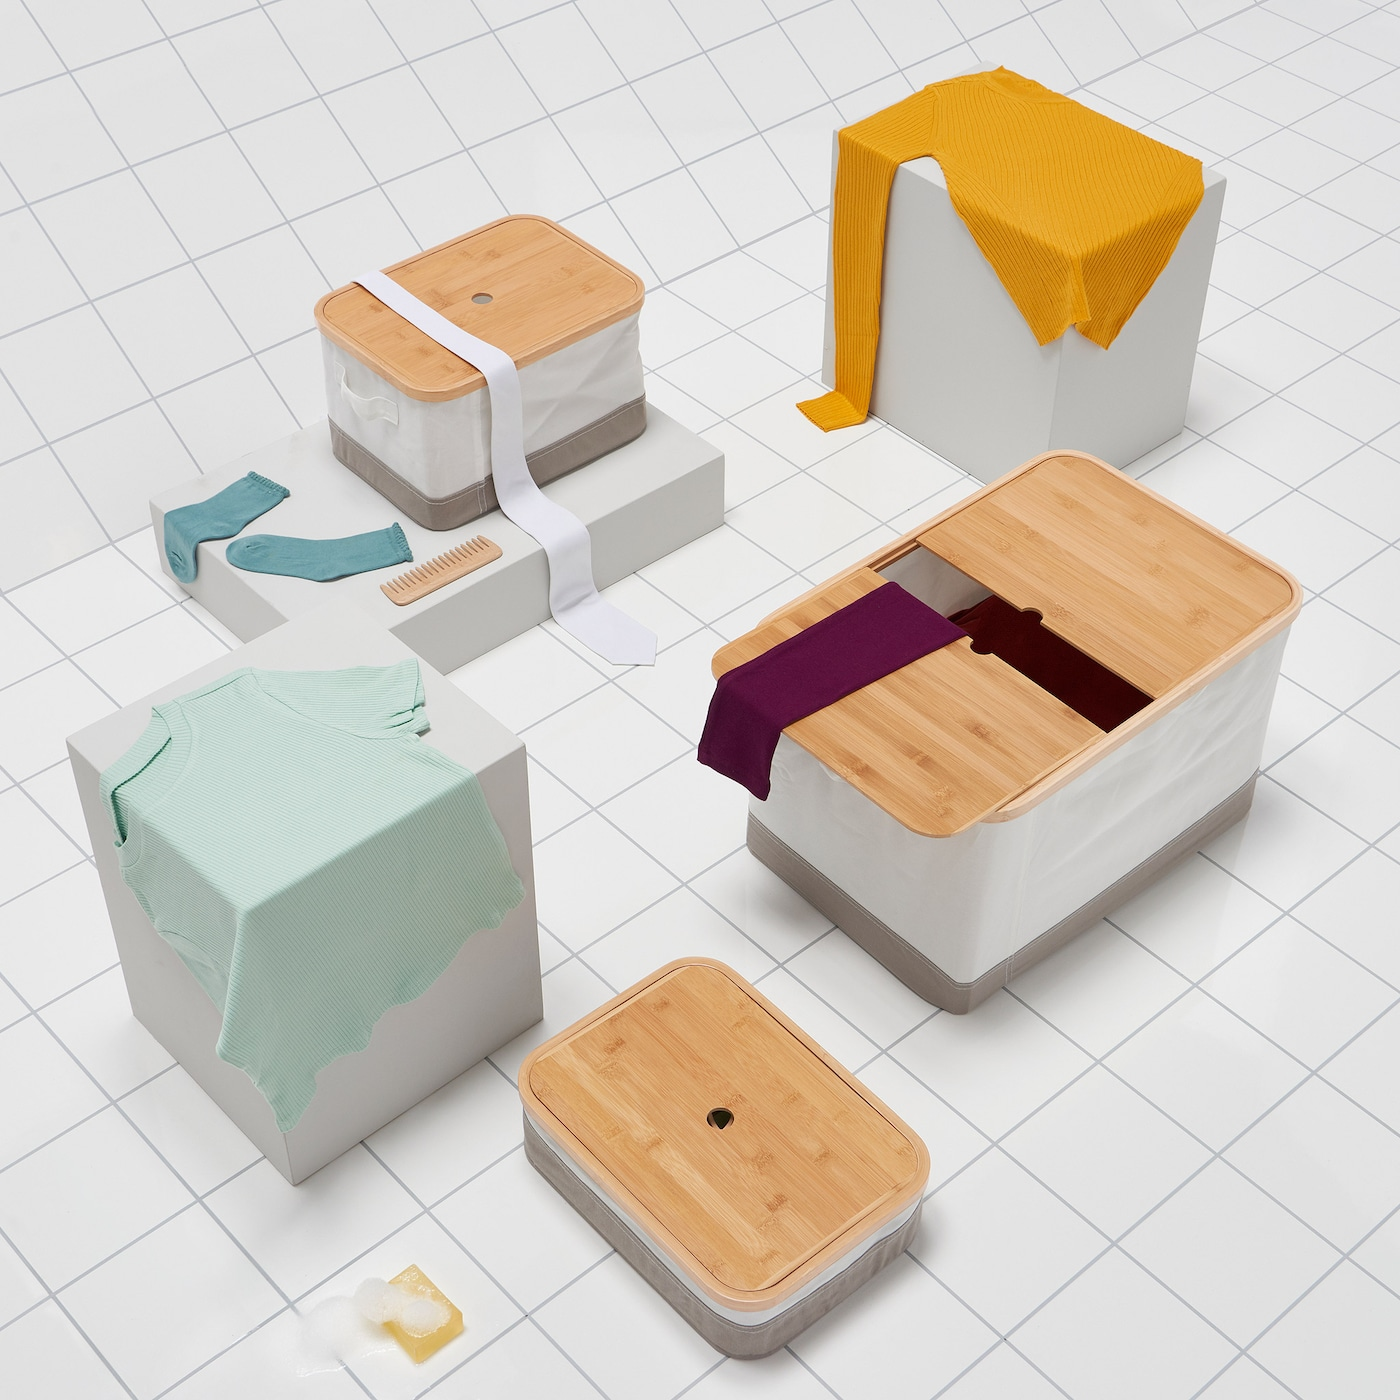 A display of IKEA RABBLA fabric boxes in three different sizes with bamboo lid, on a white tile floor.